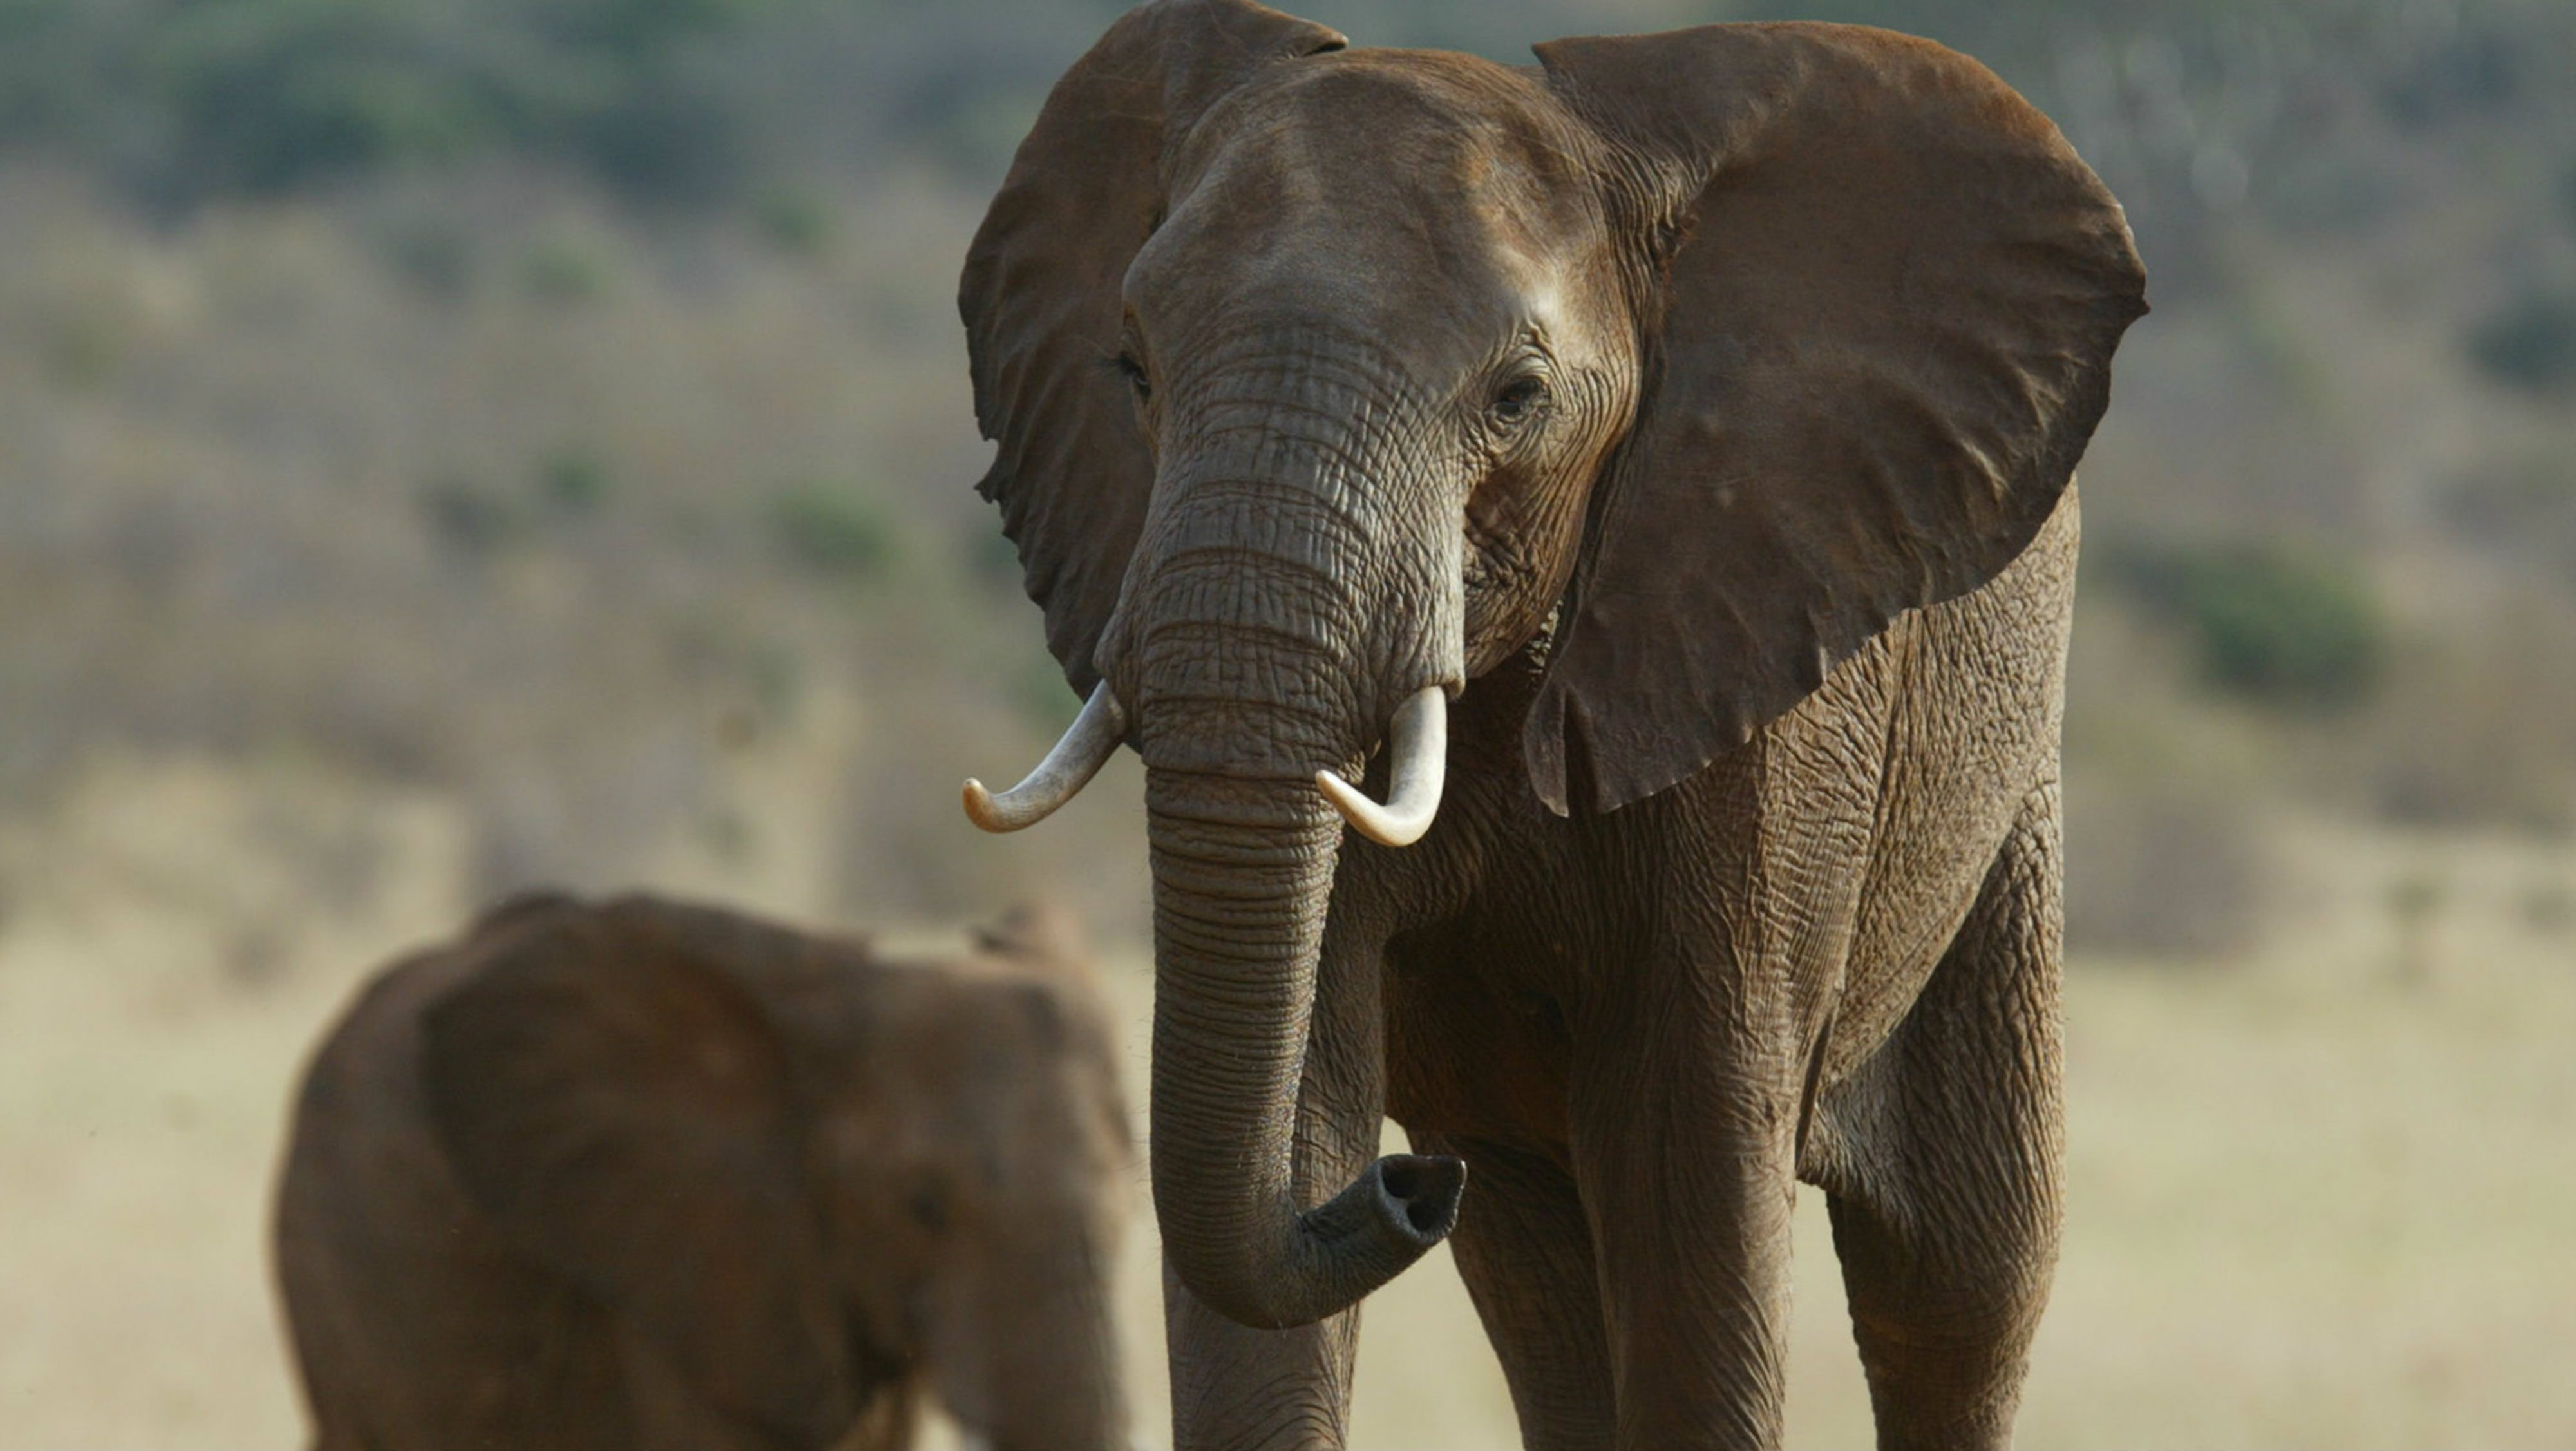 In this May 26, 2005 file photo, an elephant strolling through the dusty in Tsavo East National Park, Kenya. Some African elephant herds are adapting to the danger of poaching by moving out of risky areas, according to one conservation group. The plight of elephants is a key issue at the meeting of the Convention on International Trade in Endangered Species of Wild Fauna and Flora, or CITES, which began over the weekend and ends Oct. 5.